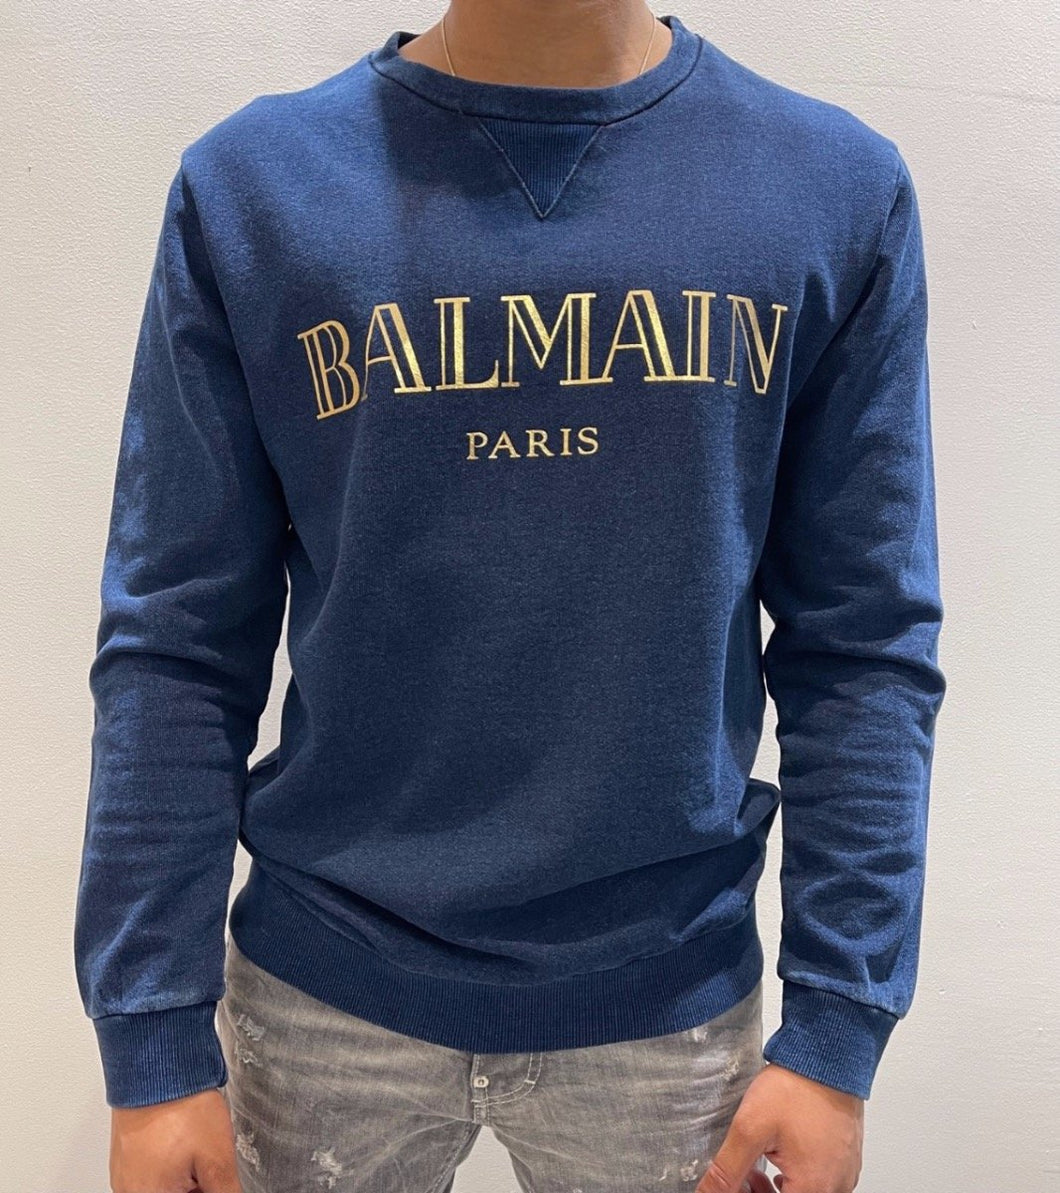 BALMAIN NAVY-GOLD SWEATER